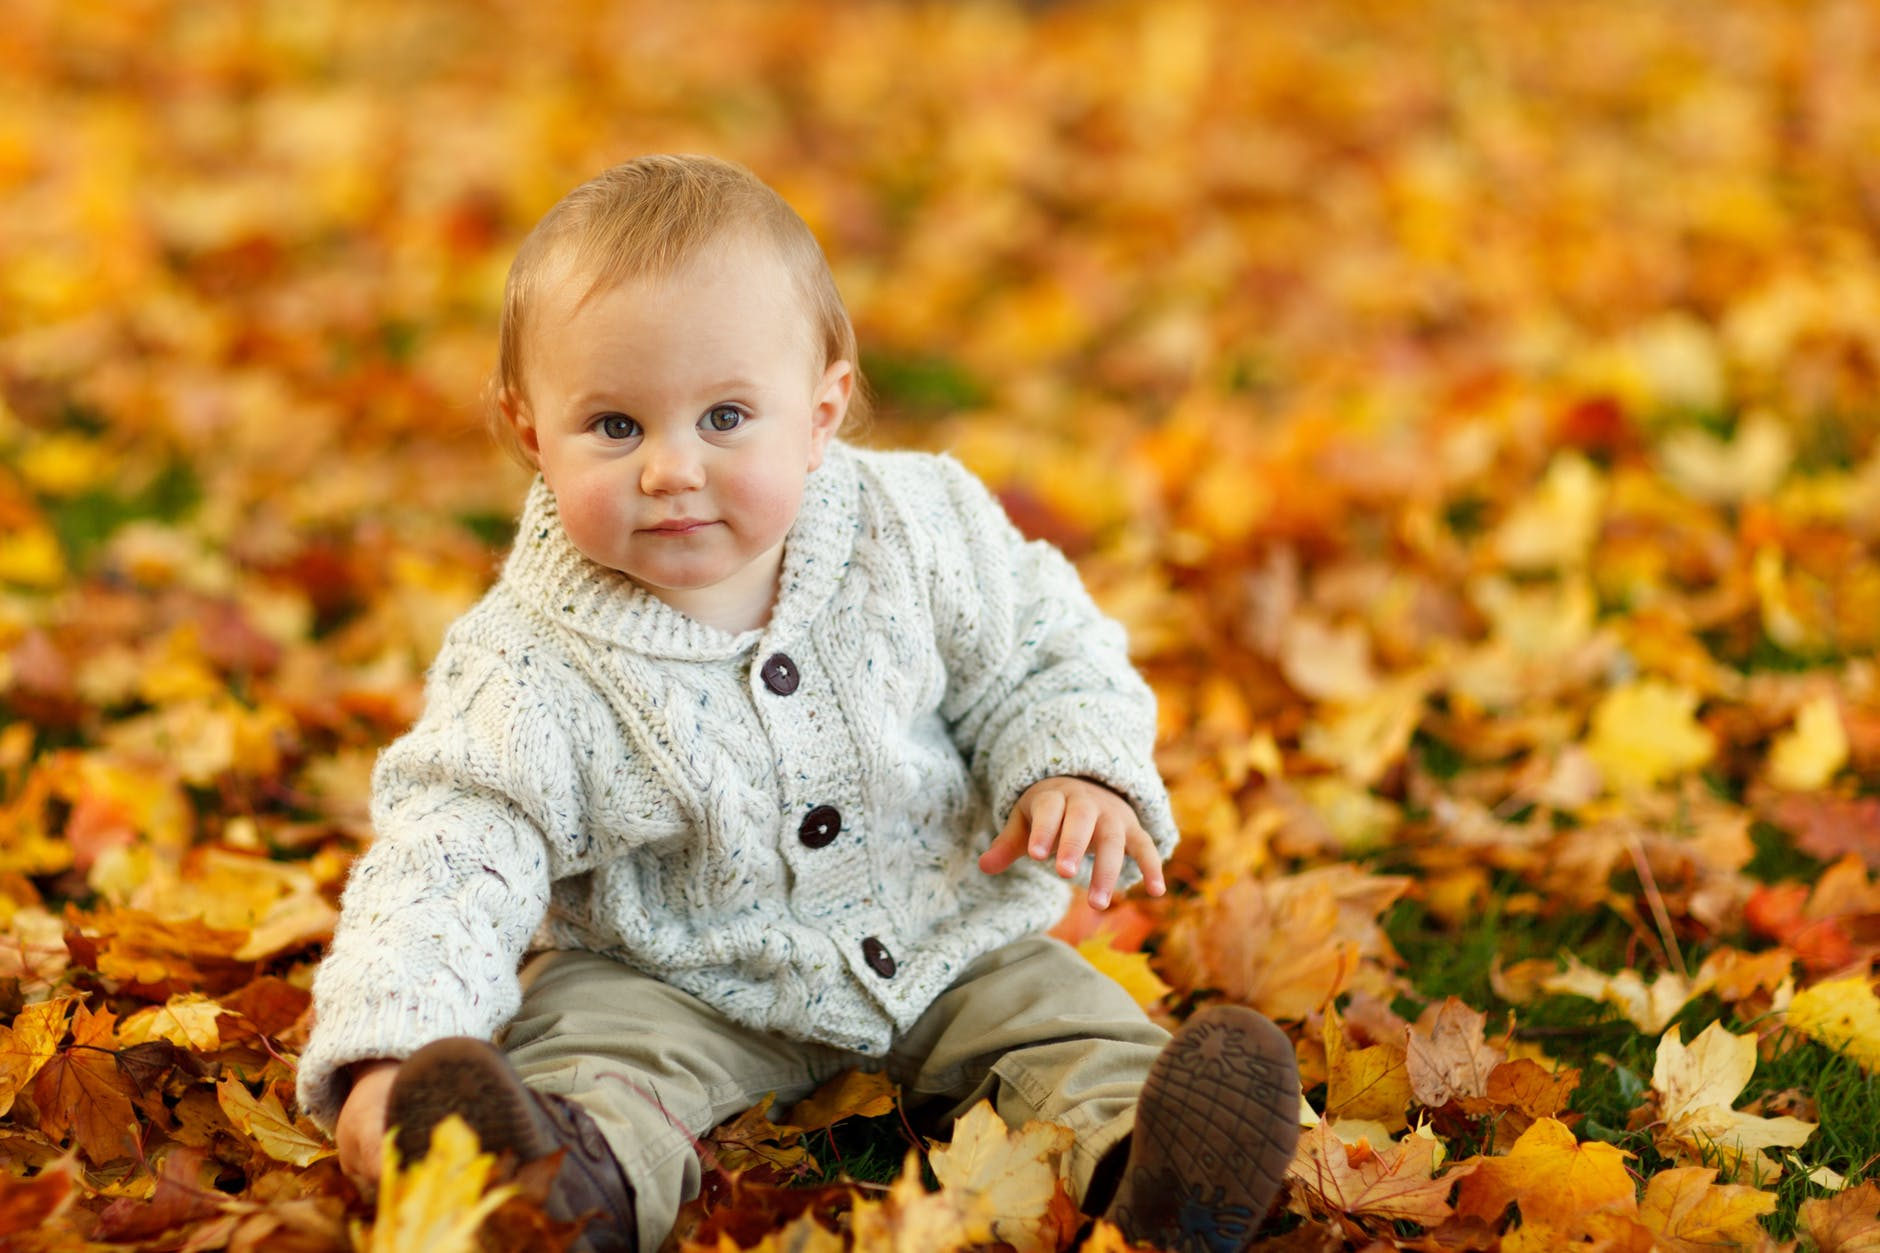 autumn-fall-baby-boy-child-59865